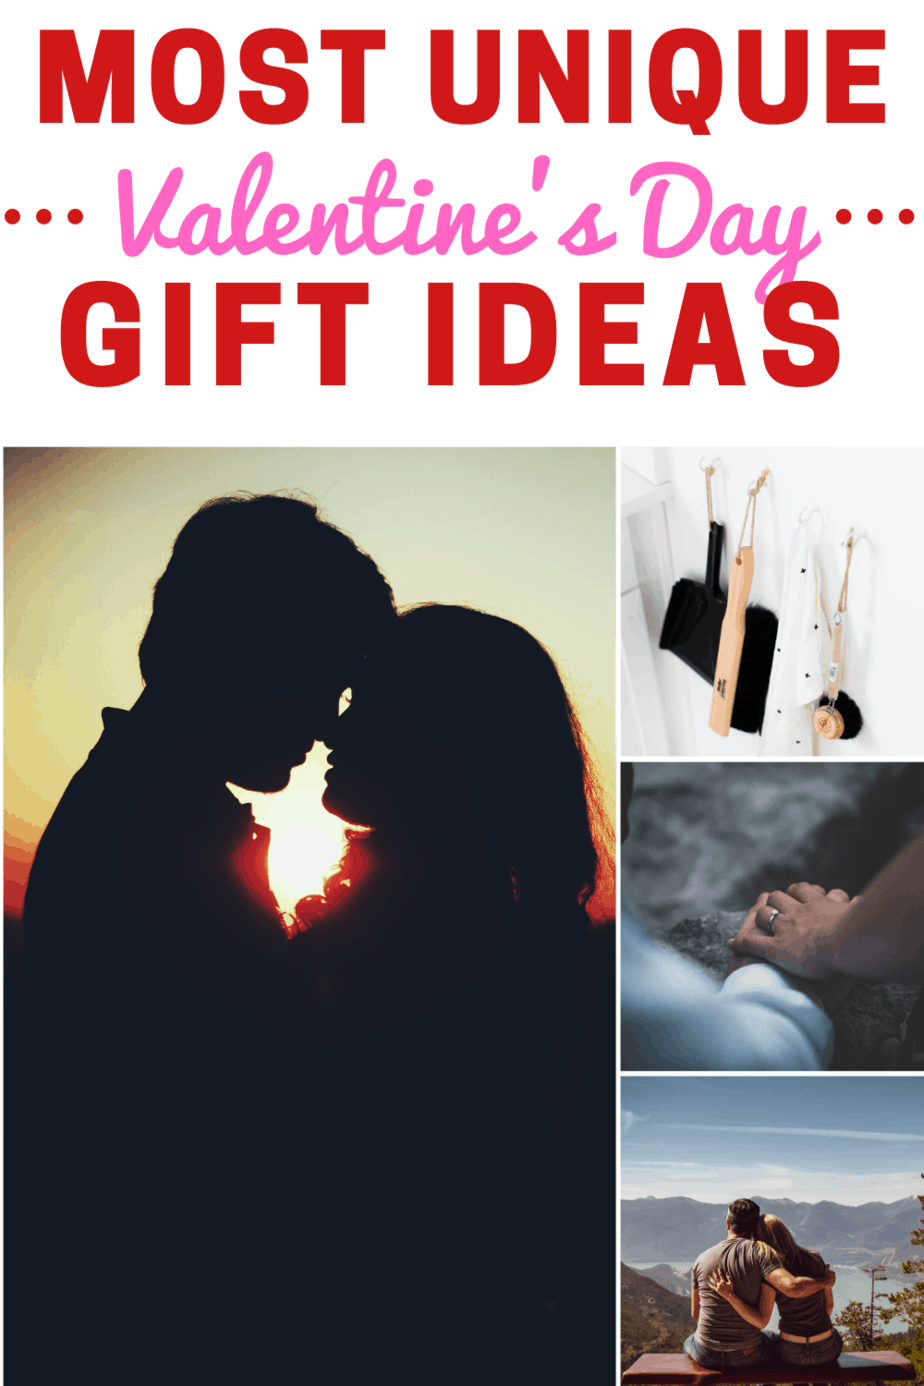 Most unique Valentine's Day Gift Ideas for the mom with young children. Skip the roses and chocolates and do something that will make her see stars for months afterwards. #valentinesday #mom #giftideas